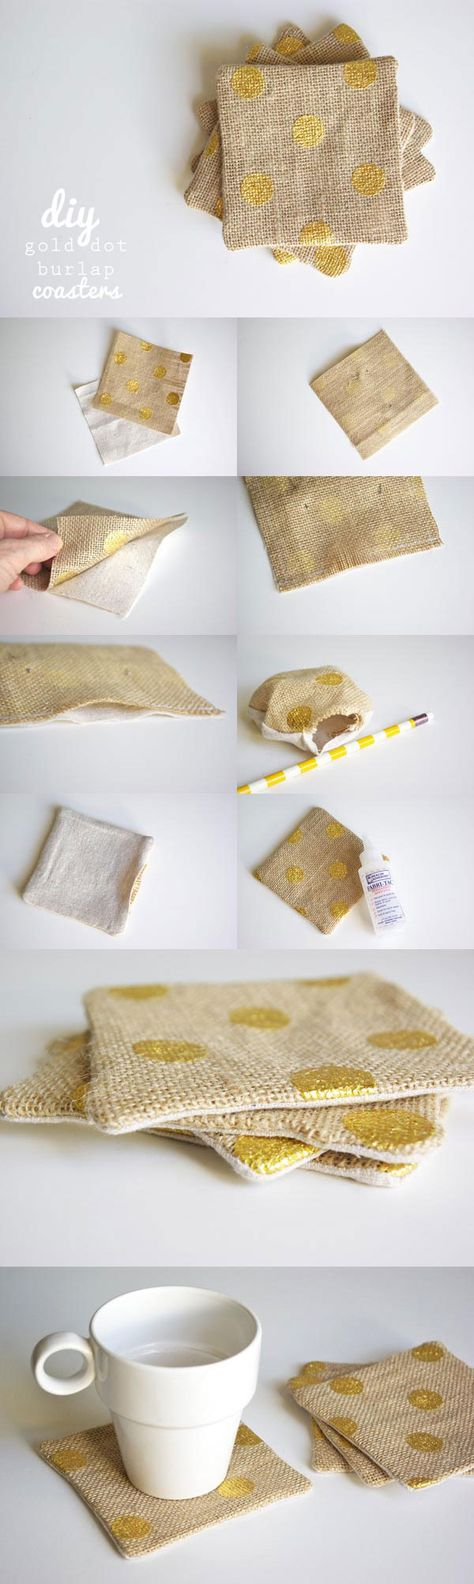 DIY (Gold Dot) BURLAP COASTERS :: Super easy to make with some string, unbleached cotton (or linen would work) and burlap. (She purchased hers with the gold dot already on it from Joann's, but you could make your own w/ gold some craft paint and fabric paint additive mixed together...or just use plain burlap and stencil a cute design or word on!). CLICK for the full tutorial. Great for beginner sewers!